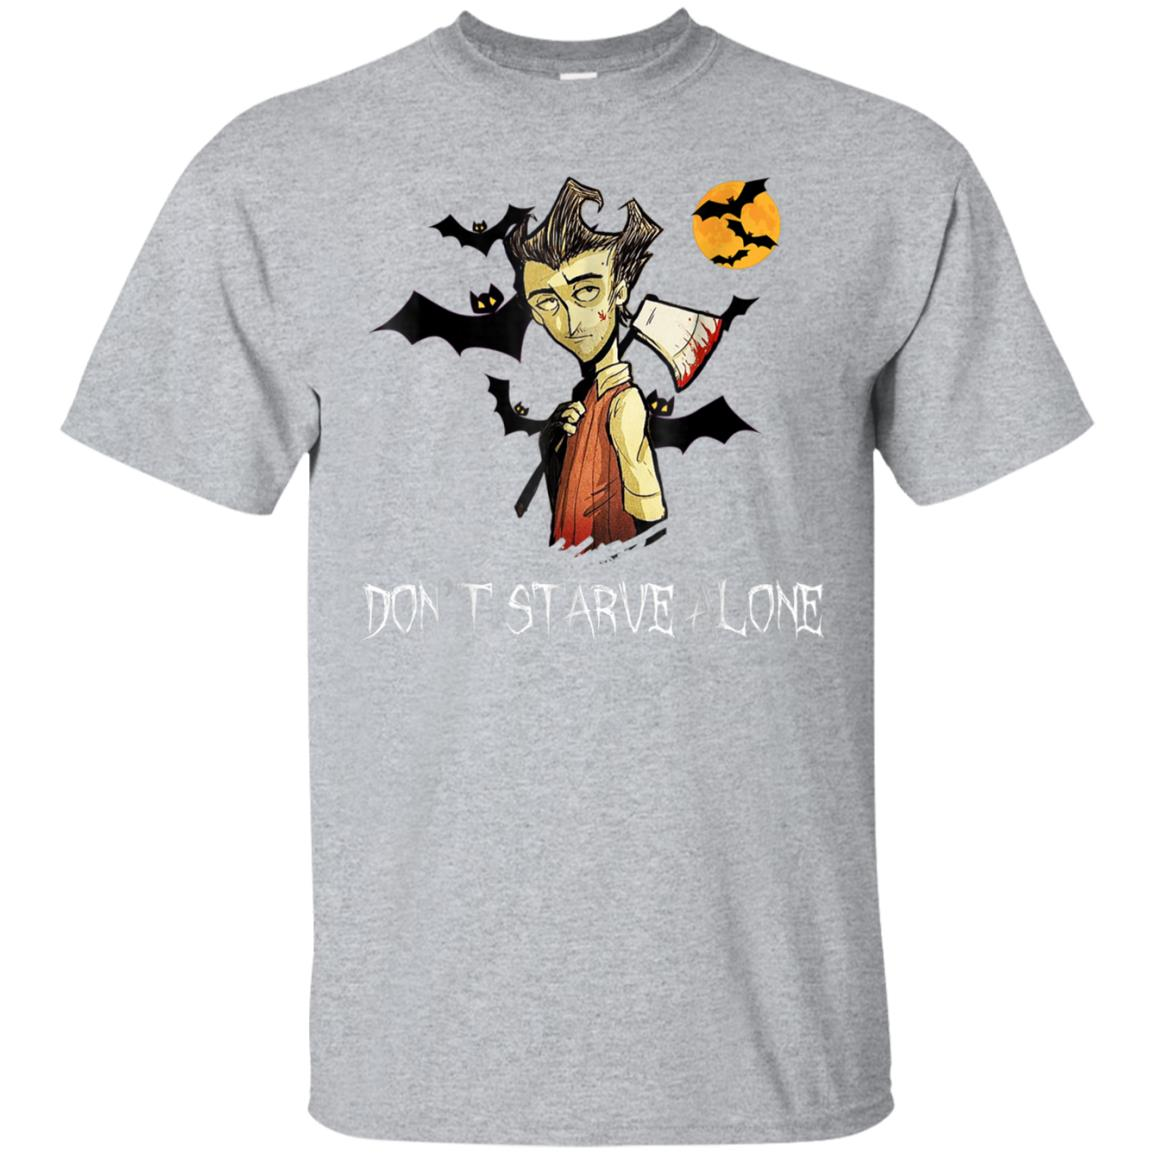 Don't Starve Alone in The Halloween Night t-shirt 99promocode